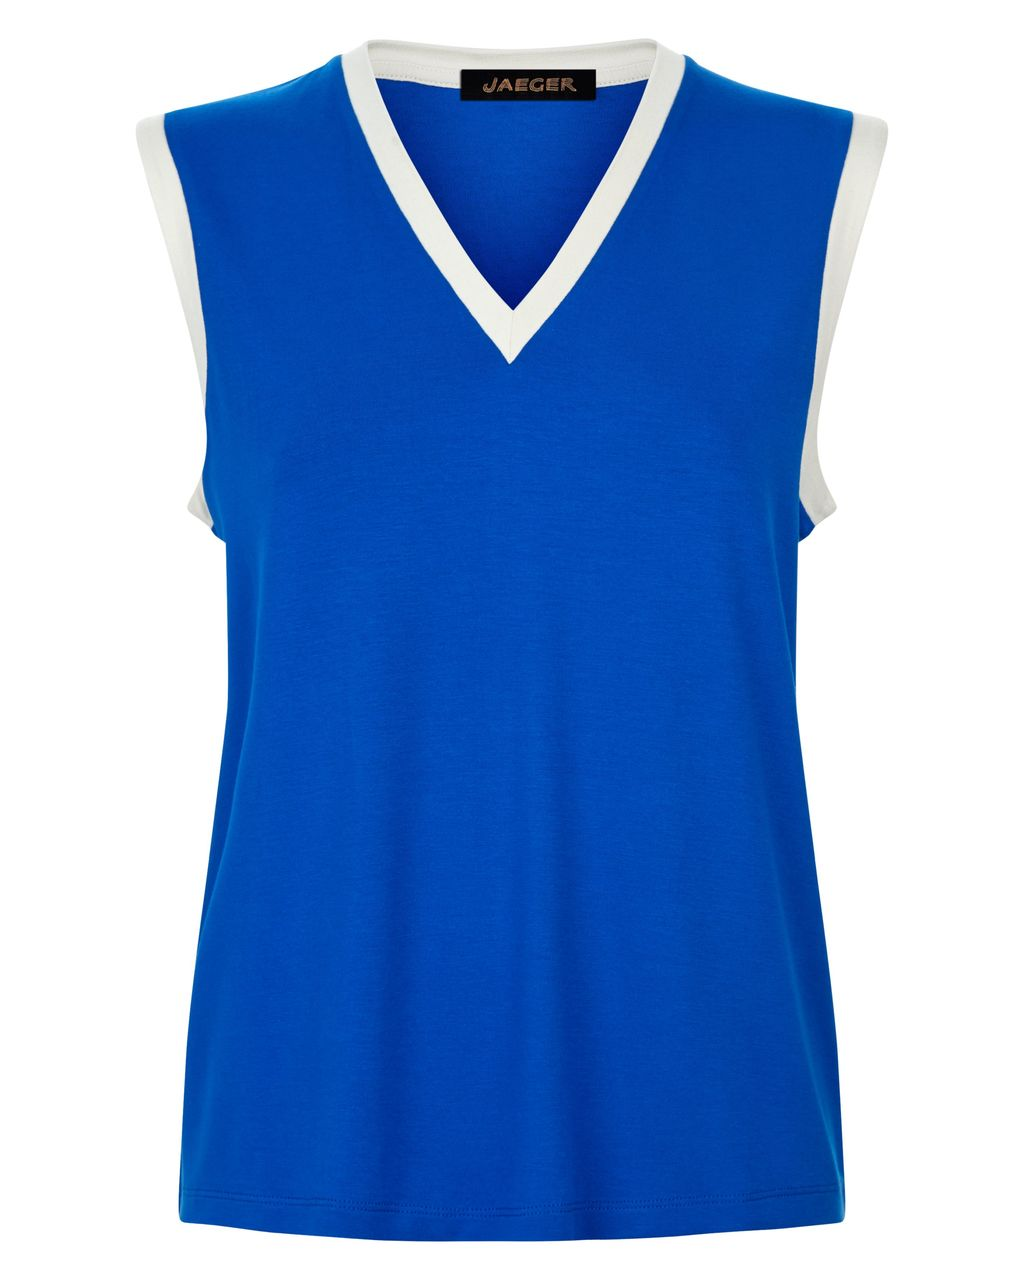 Jersey Vest Top, Blue - neckline: v-neck; sleeve style: sleeveless; style: vest top; secondary colour: white; predominant colour: royal blue; occasions: casual; length: standard; fibres: viscose/rayon - stretch; fit: body skimming; sleeve length: sleeveless; pattern type: fabric; pattern size: standard; pattern: colourblock; texture group: jersey - stretchy/drapey; season: s/s 2016; wardrobe: highlight